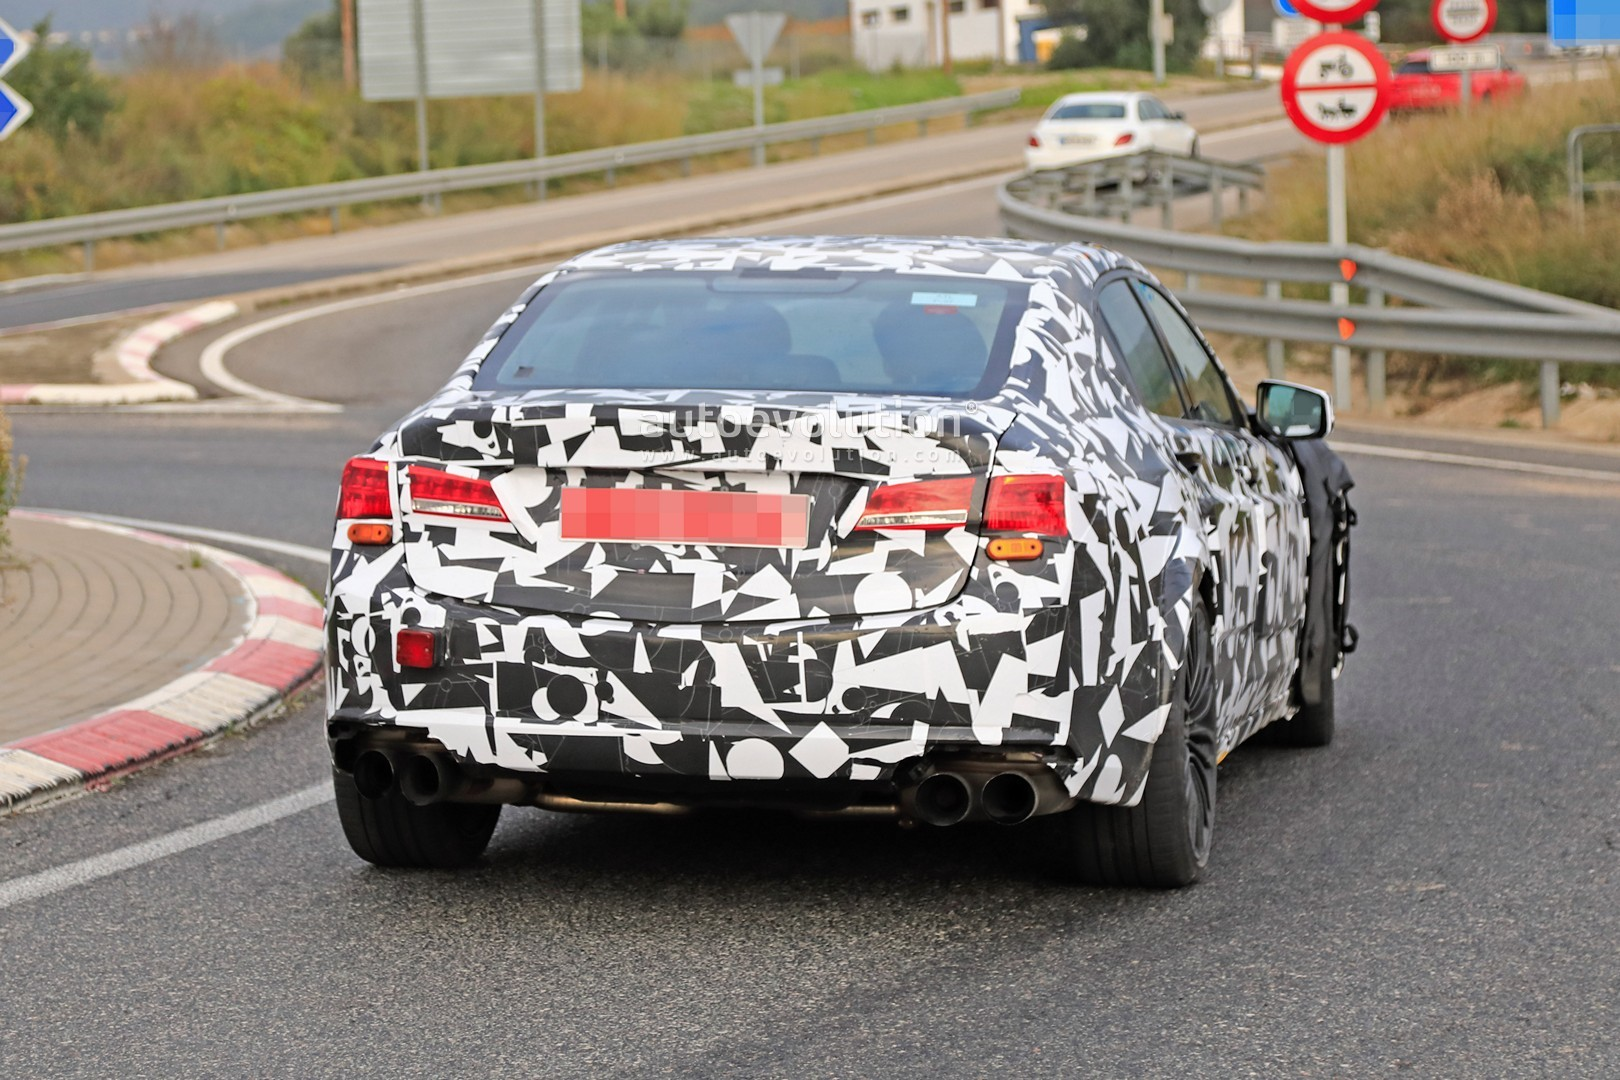 2020 Acura MDX Type S Spy Shots And Release Date Info >> 2020 Acura Tlx Type S Spied With Audi S4 And Amg C43 V6 Turbo